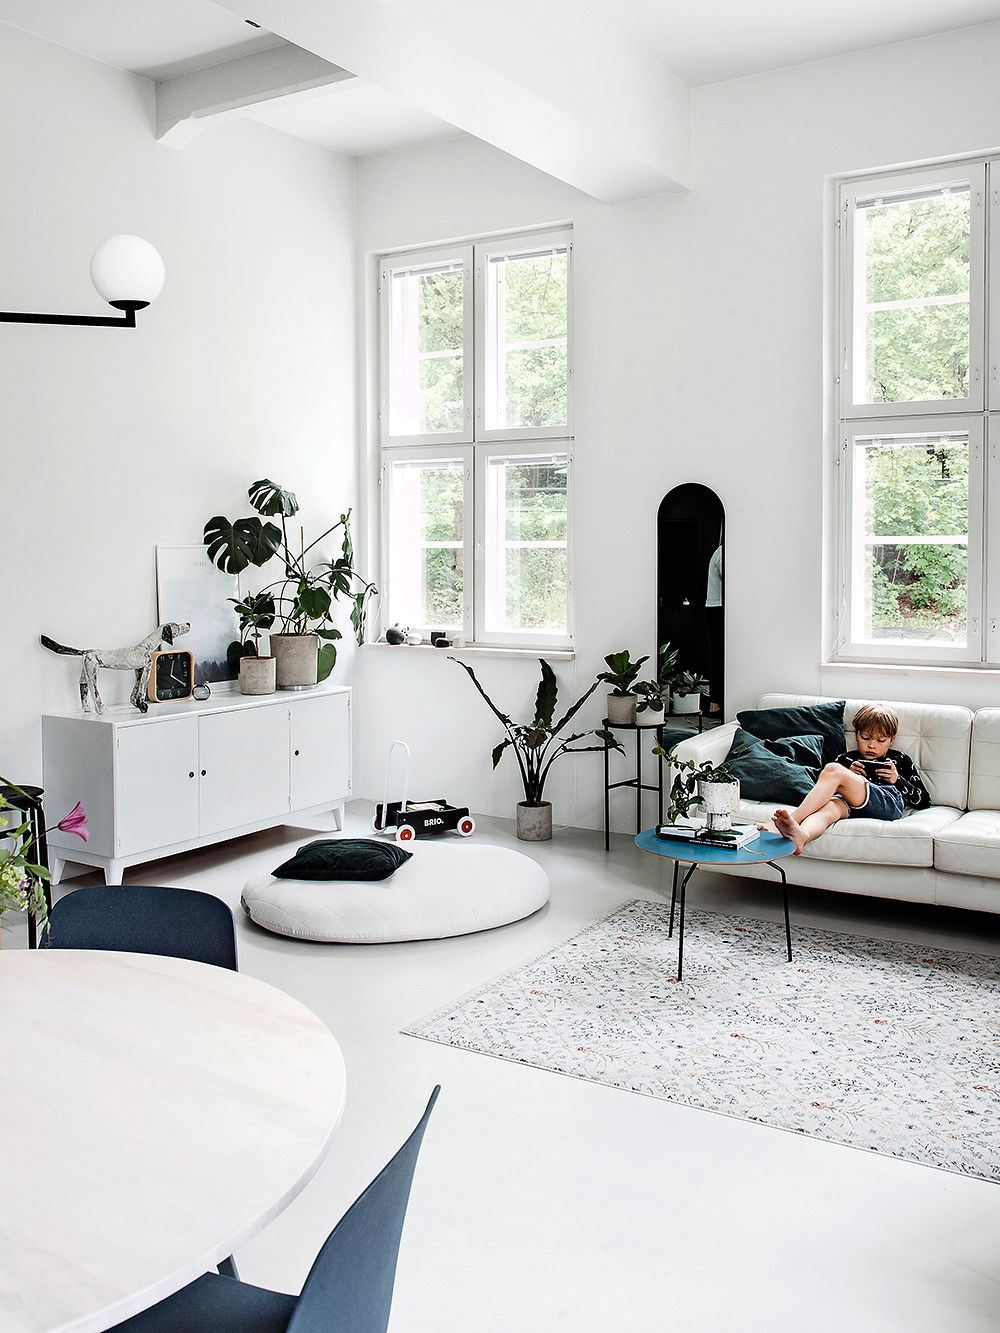 Loft living in an old fire station